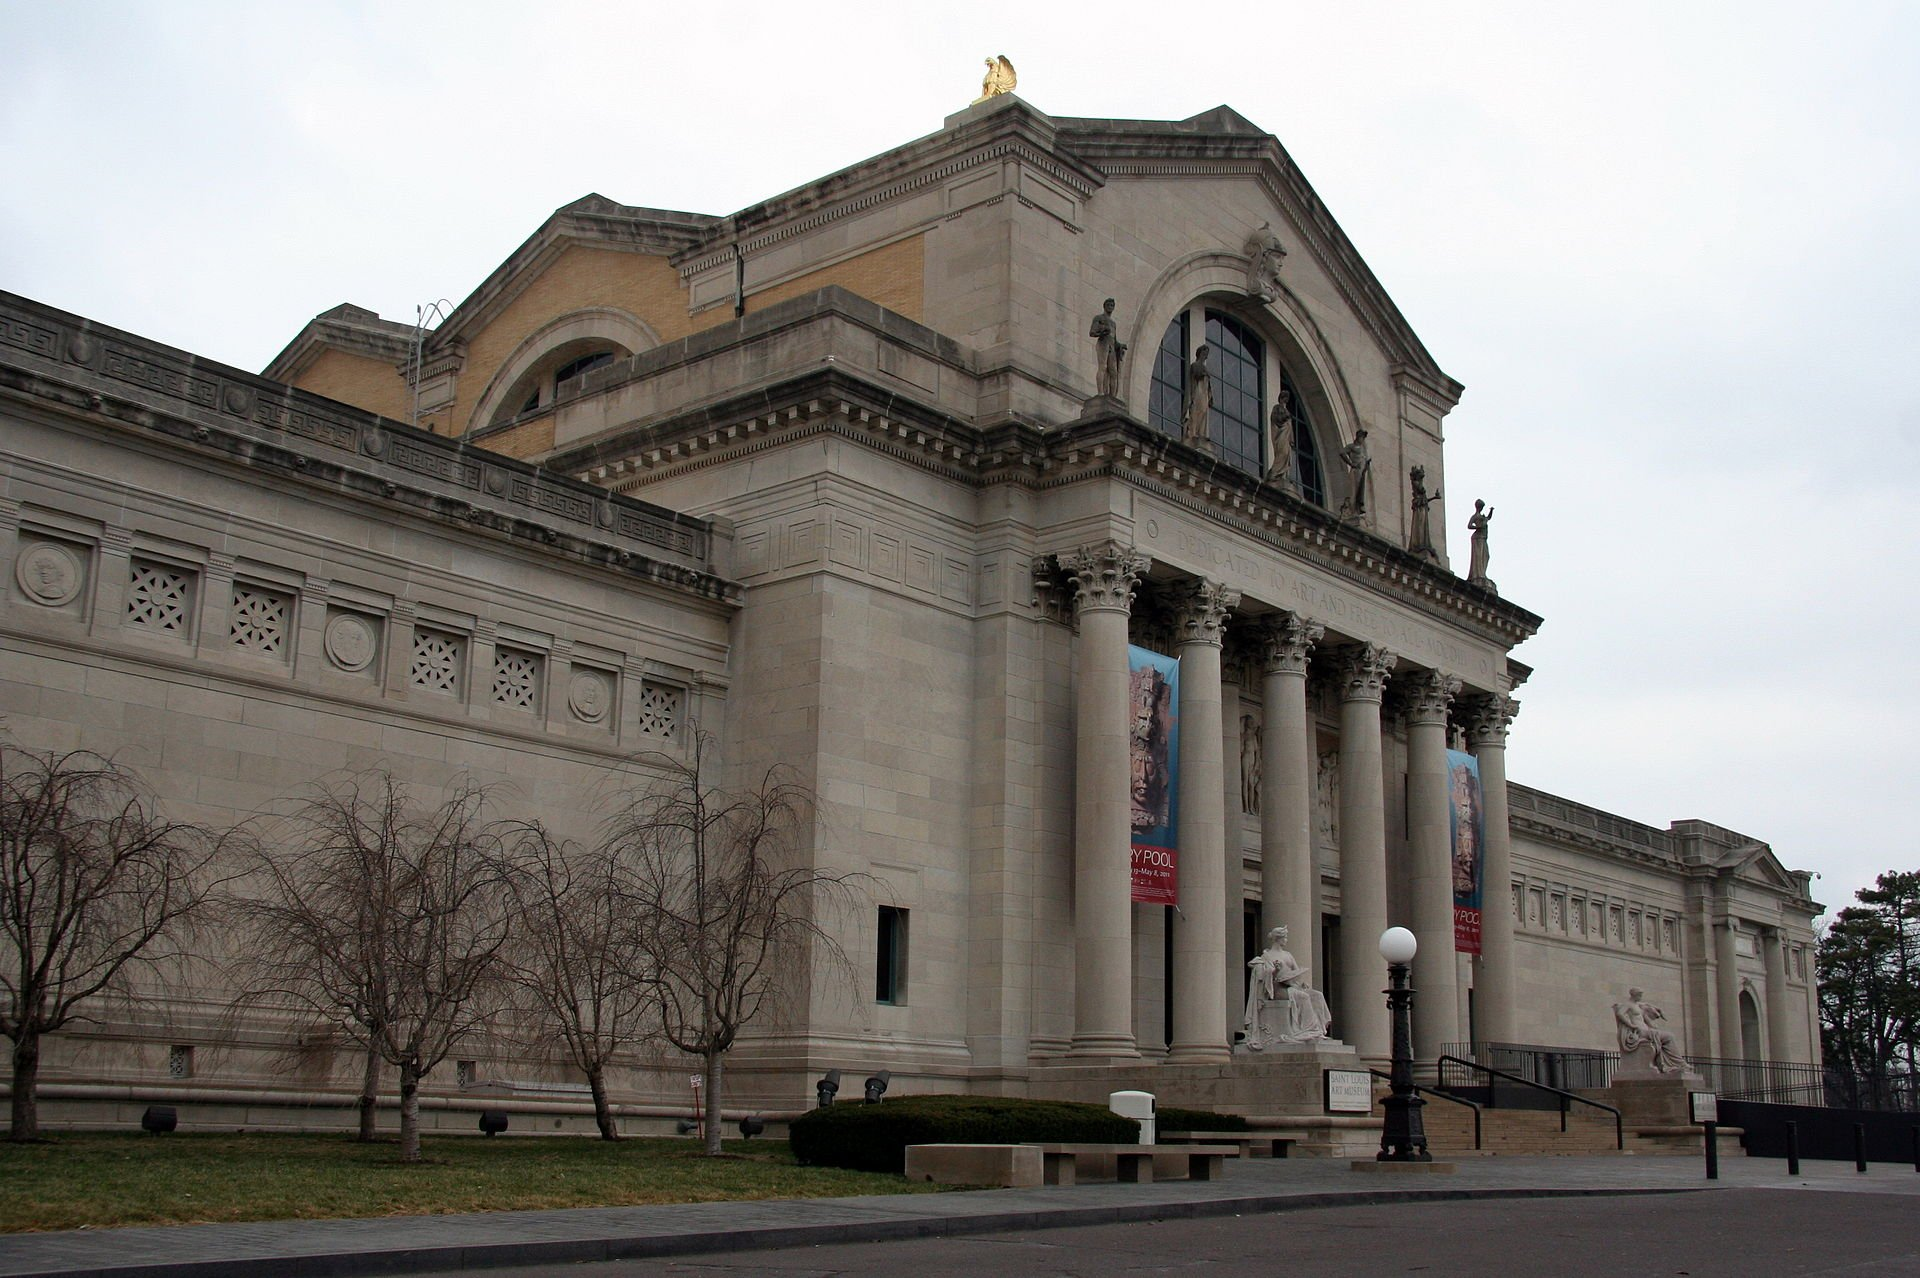 The St. Louis Art Museum is located in the former Palace of Arts Building, which was used for the 1904 World's Fair. The museum contains an impressive collection that showcases almost every culture around the world.